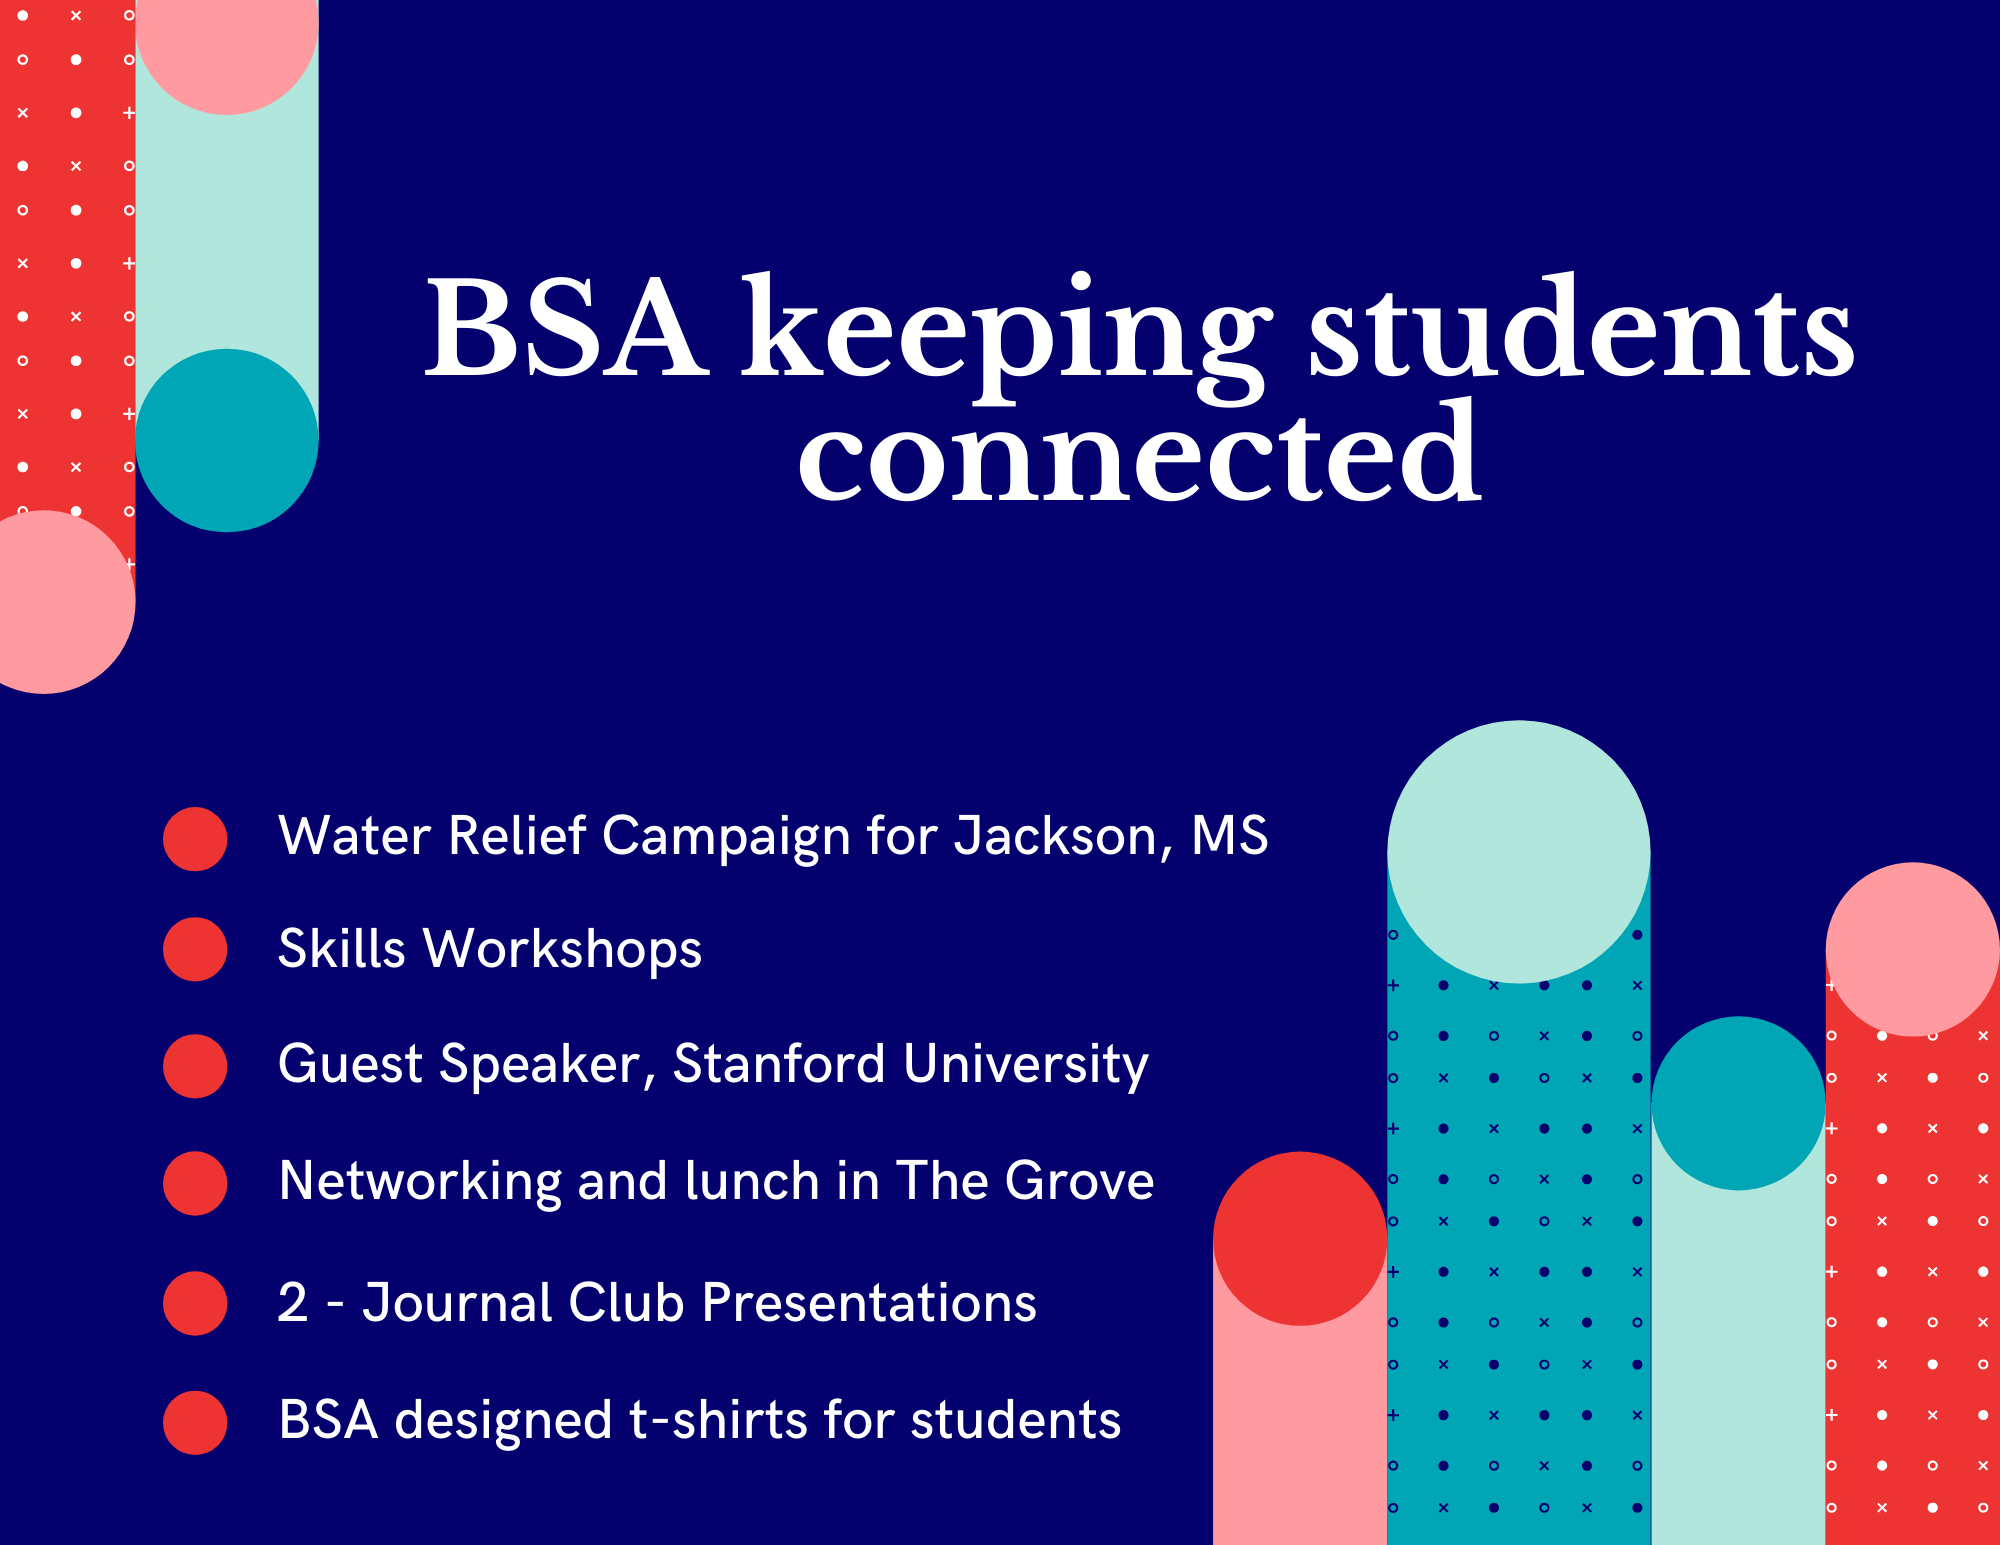 An info graphic outlining events the student organization has held over the past year